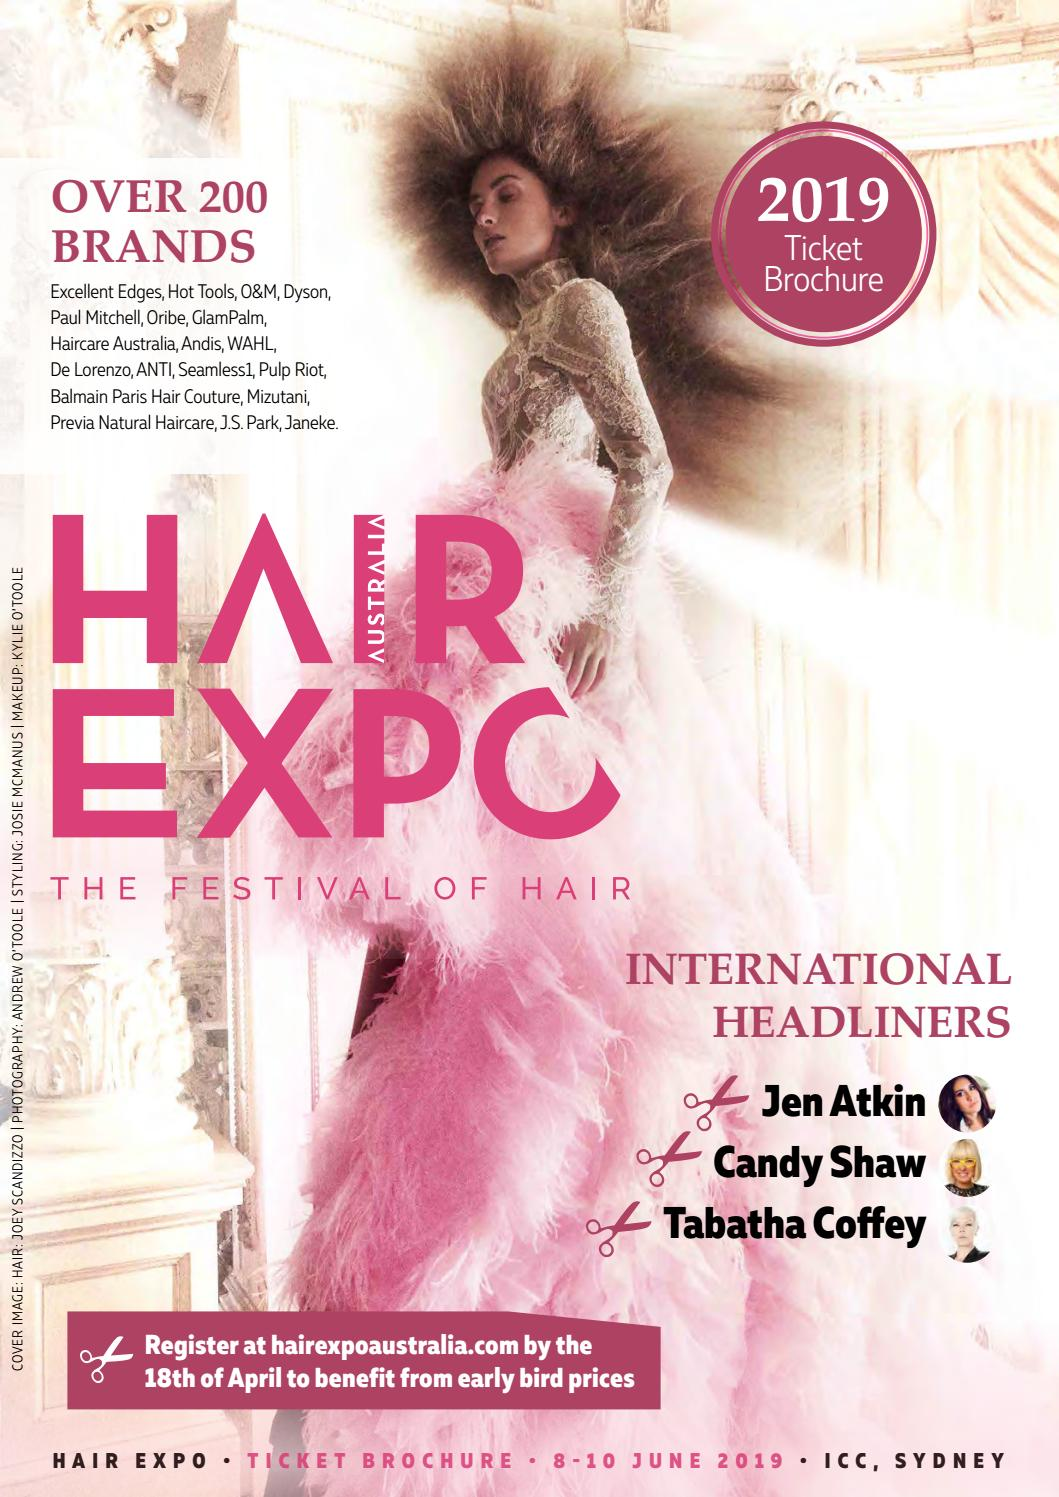 Hair Expo Australia 2019 - Ticket Brochure by Reed Exhibitions AU